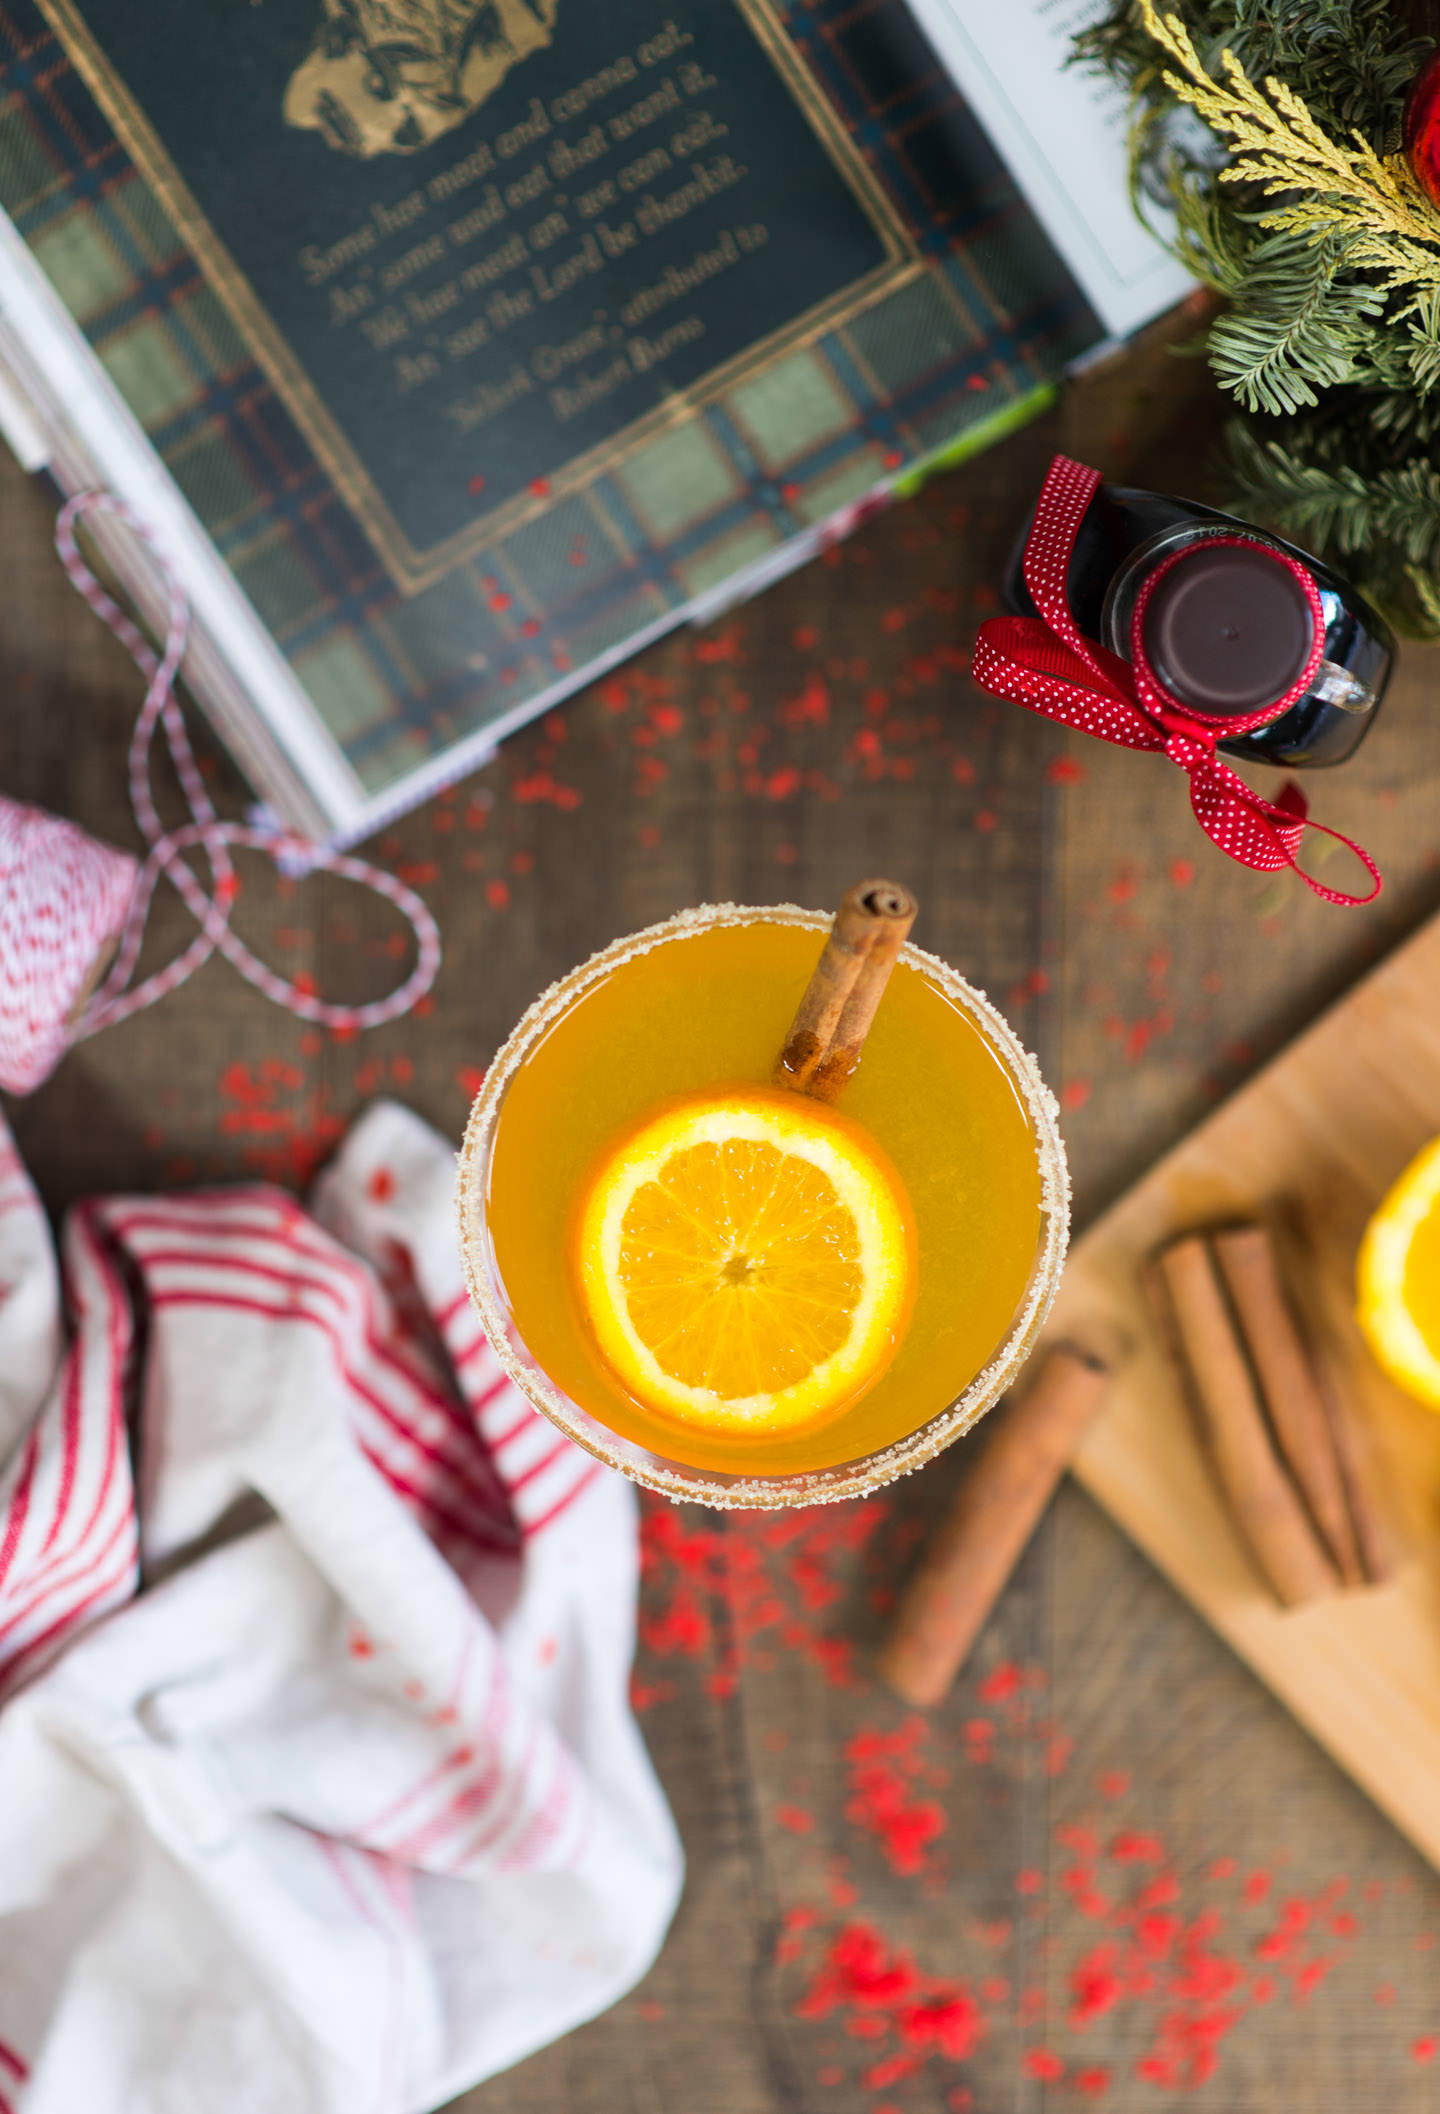 Blog-Mode-And-The-City-Food-Cosy-Fizz-Cocktail-Cointreau